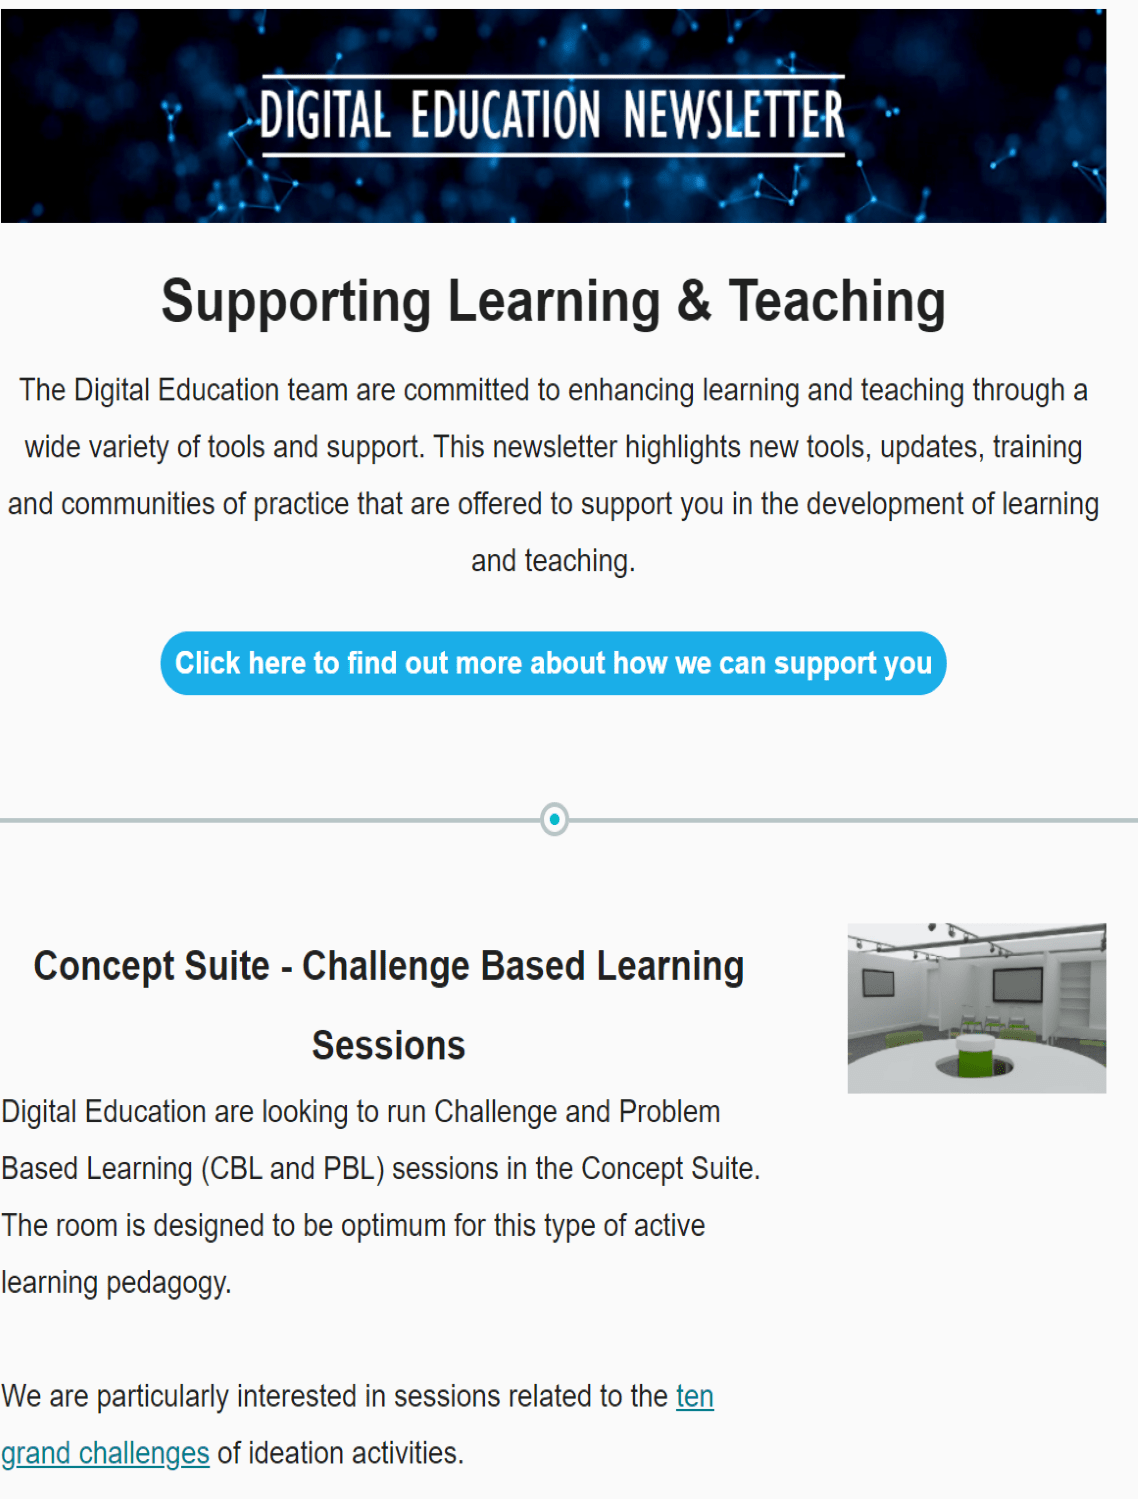 [Image with link description.]  Image is decorative and redirects to Digital Education's Newsletter, February 2020.